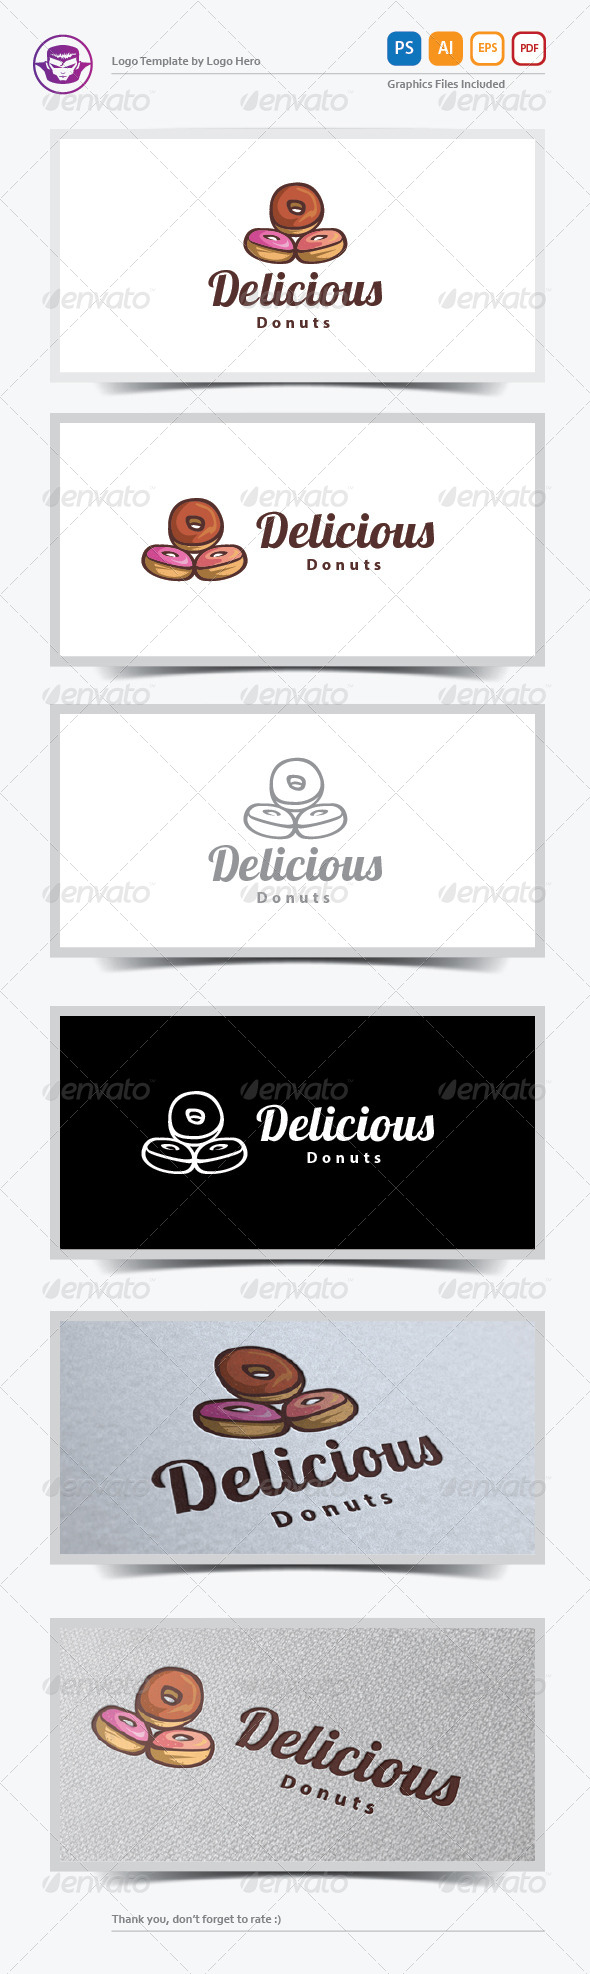 GraphicRiver Delicious Donuts Logo Template 5888881